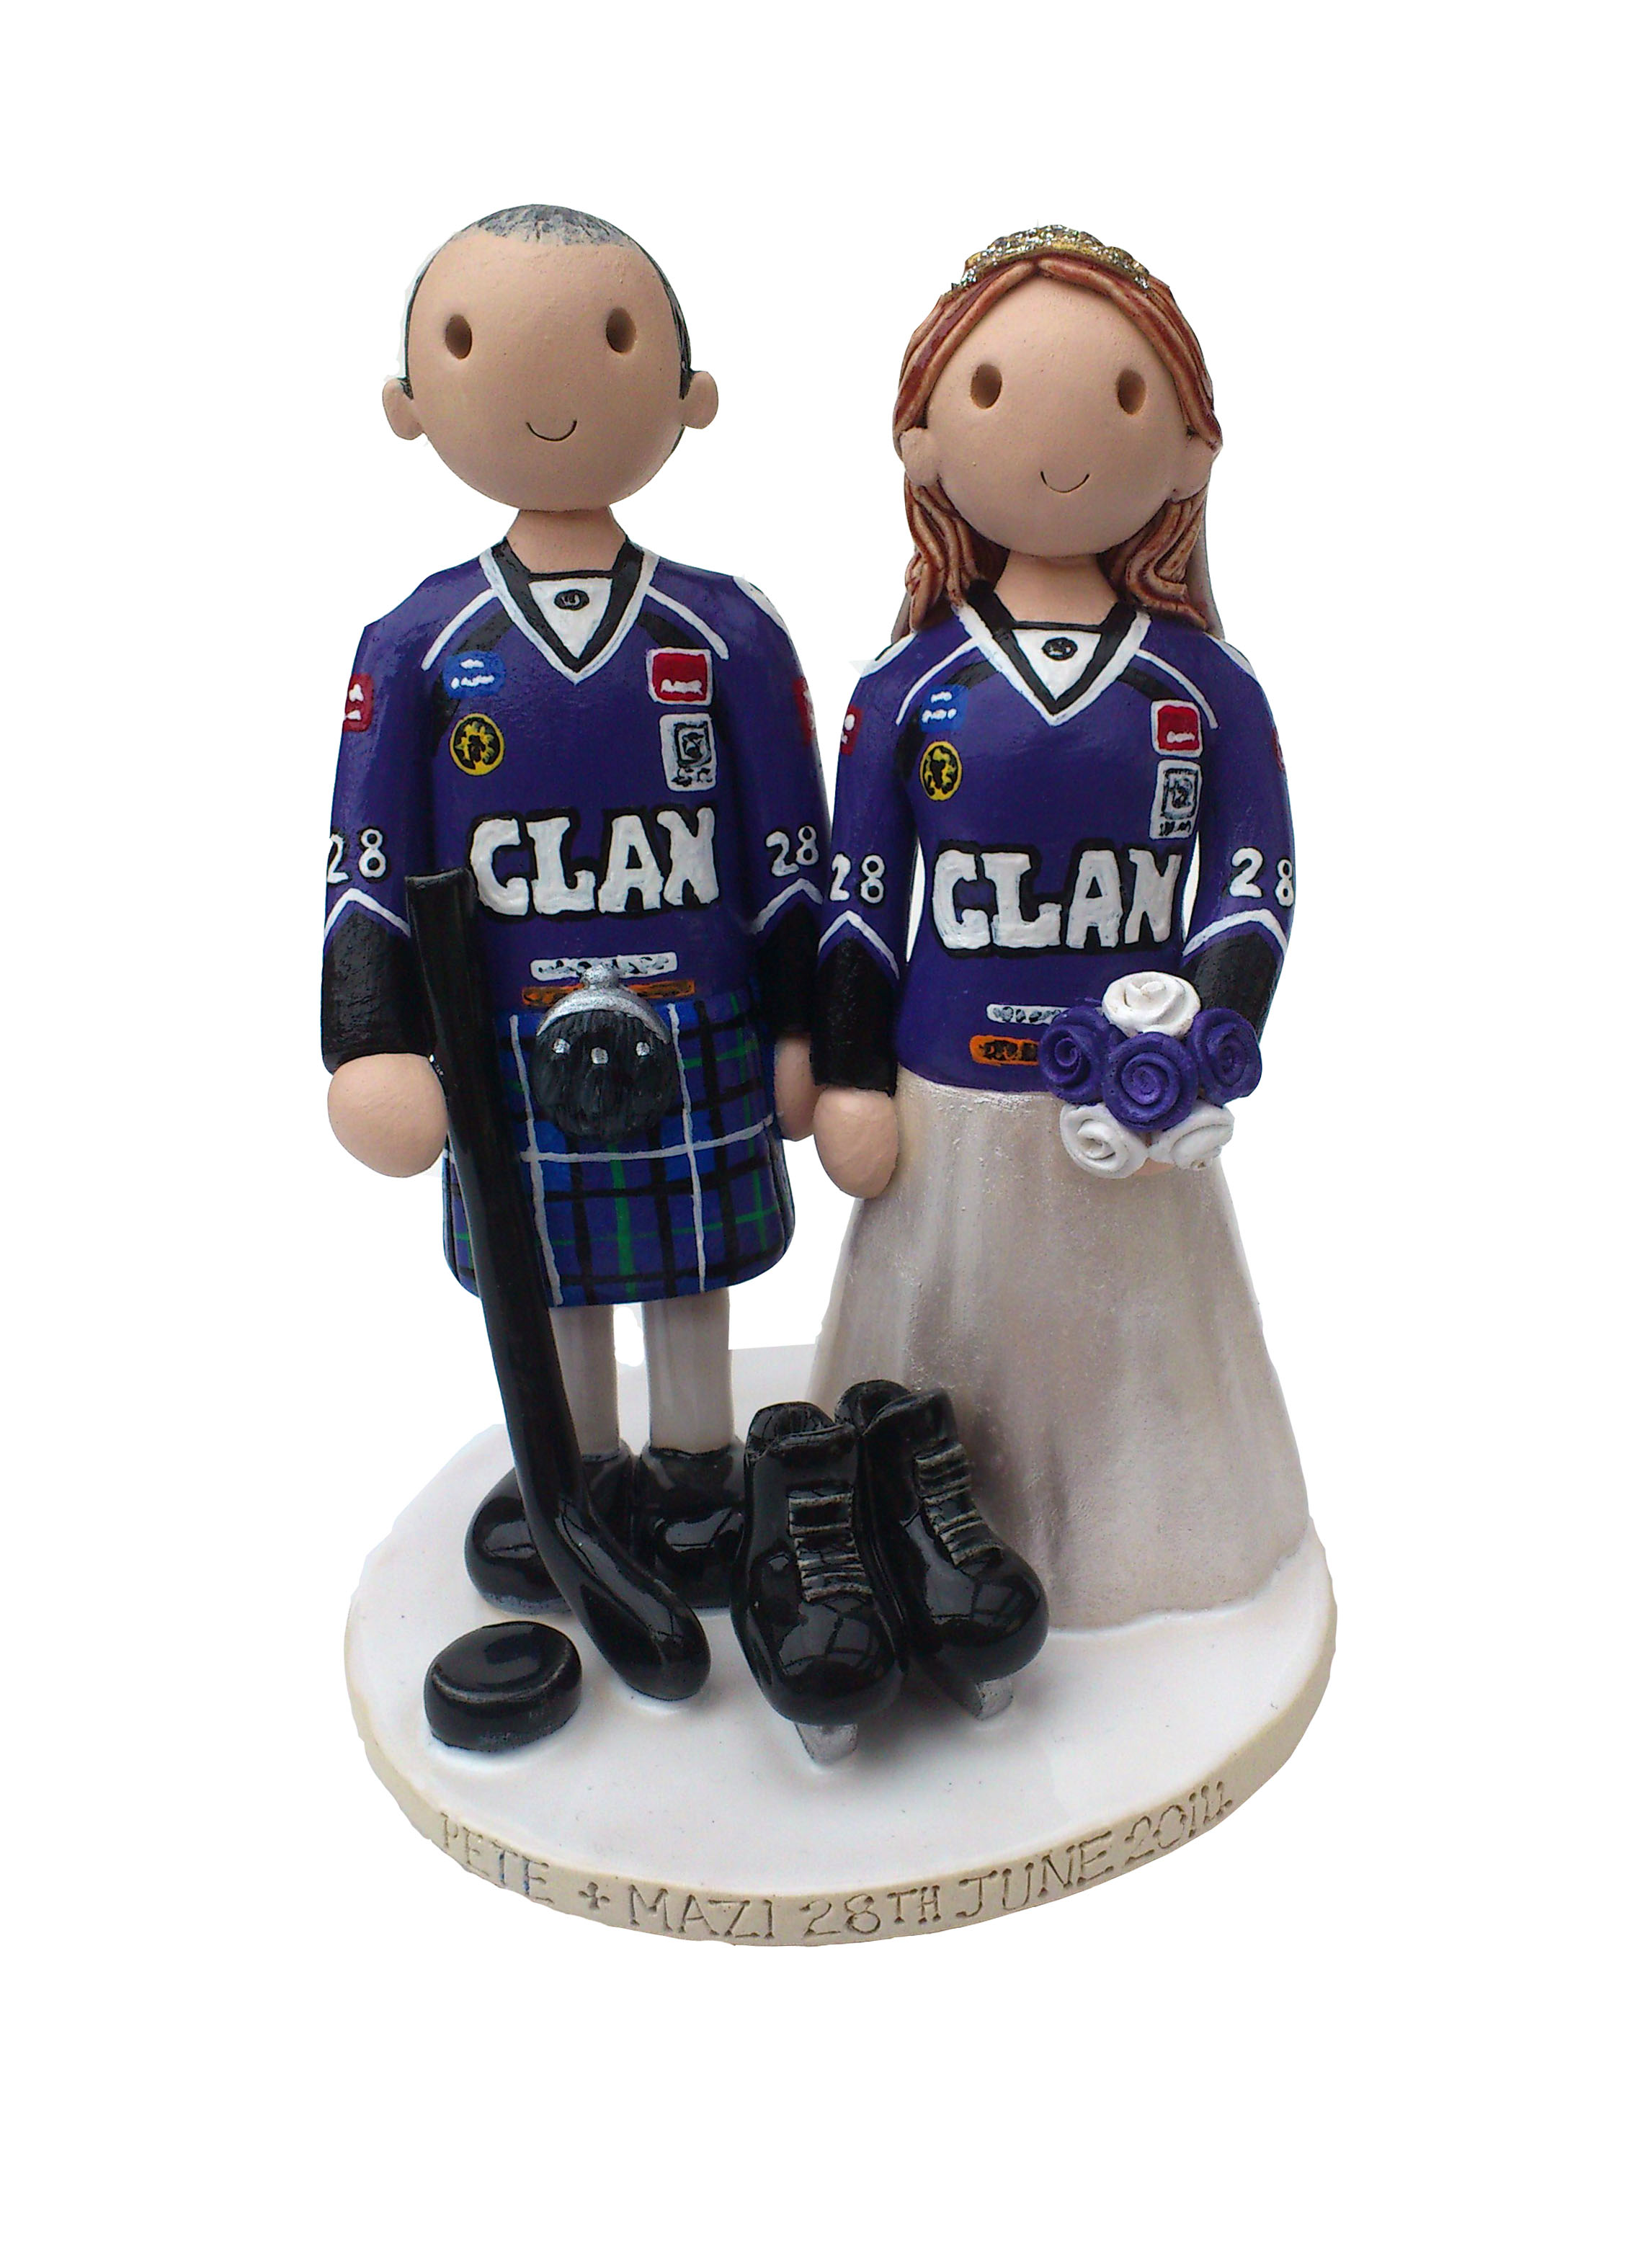 Ice Hockey Cake Decorations Uk : Wedding Cake Toppers Gallery. Examples Of Toppers We Have ...